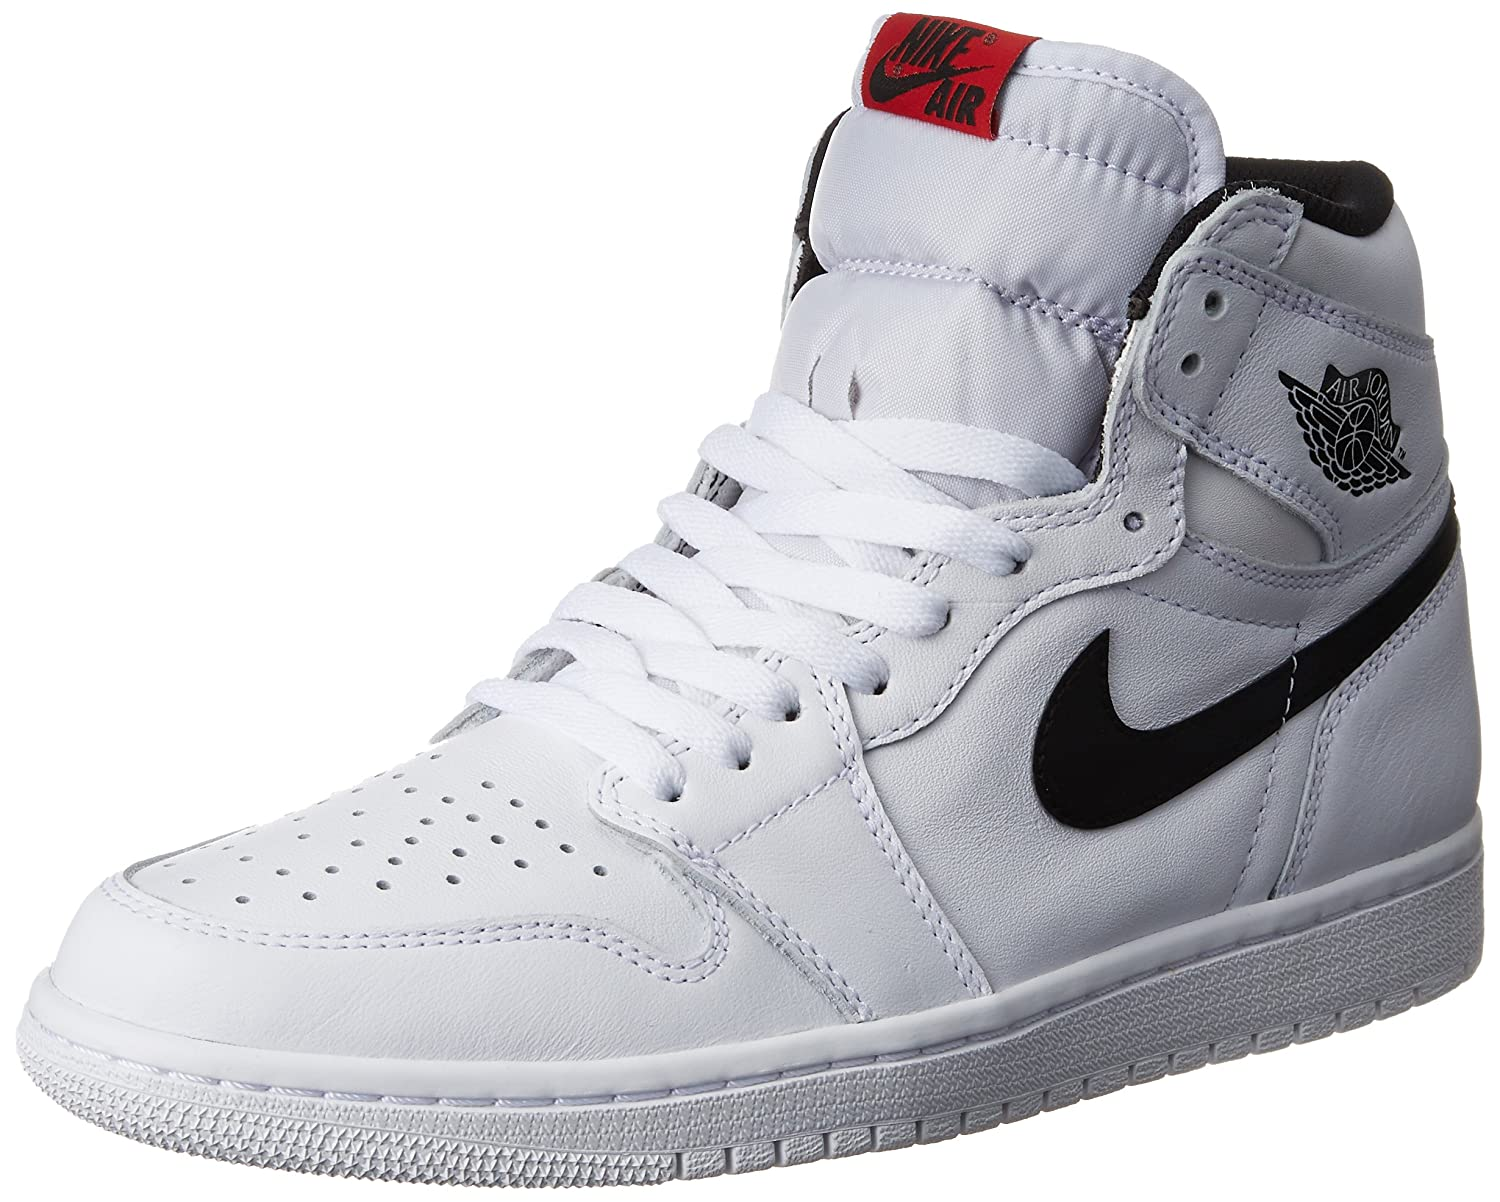 Amazon.com: Nike Men\u0027s Air Jordan 1 Mid Basketball Shoe: Nike: Clothing